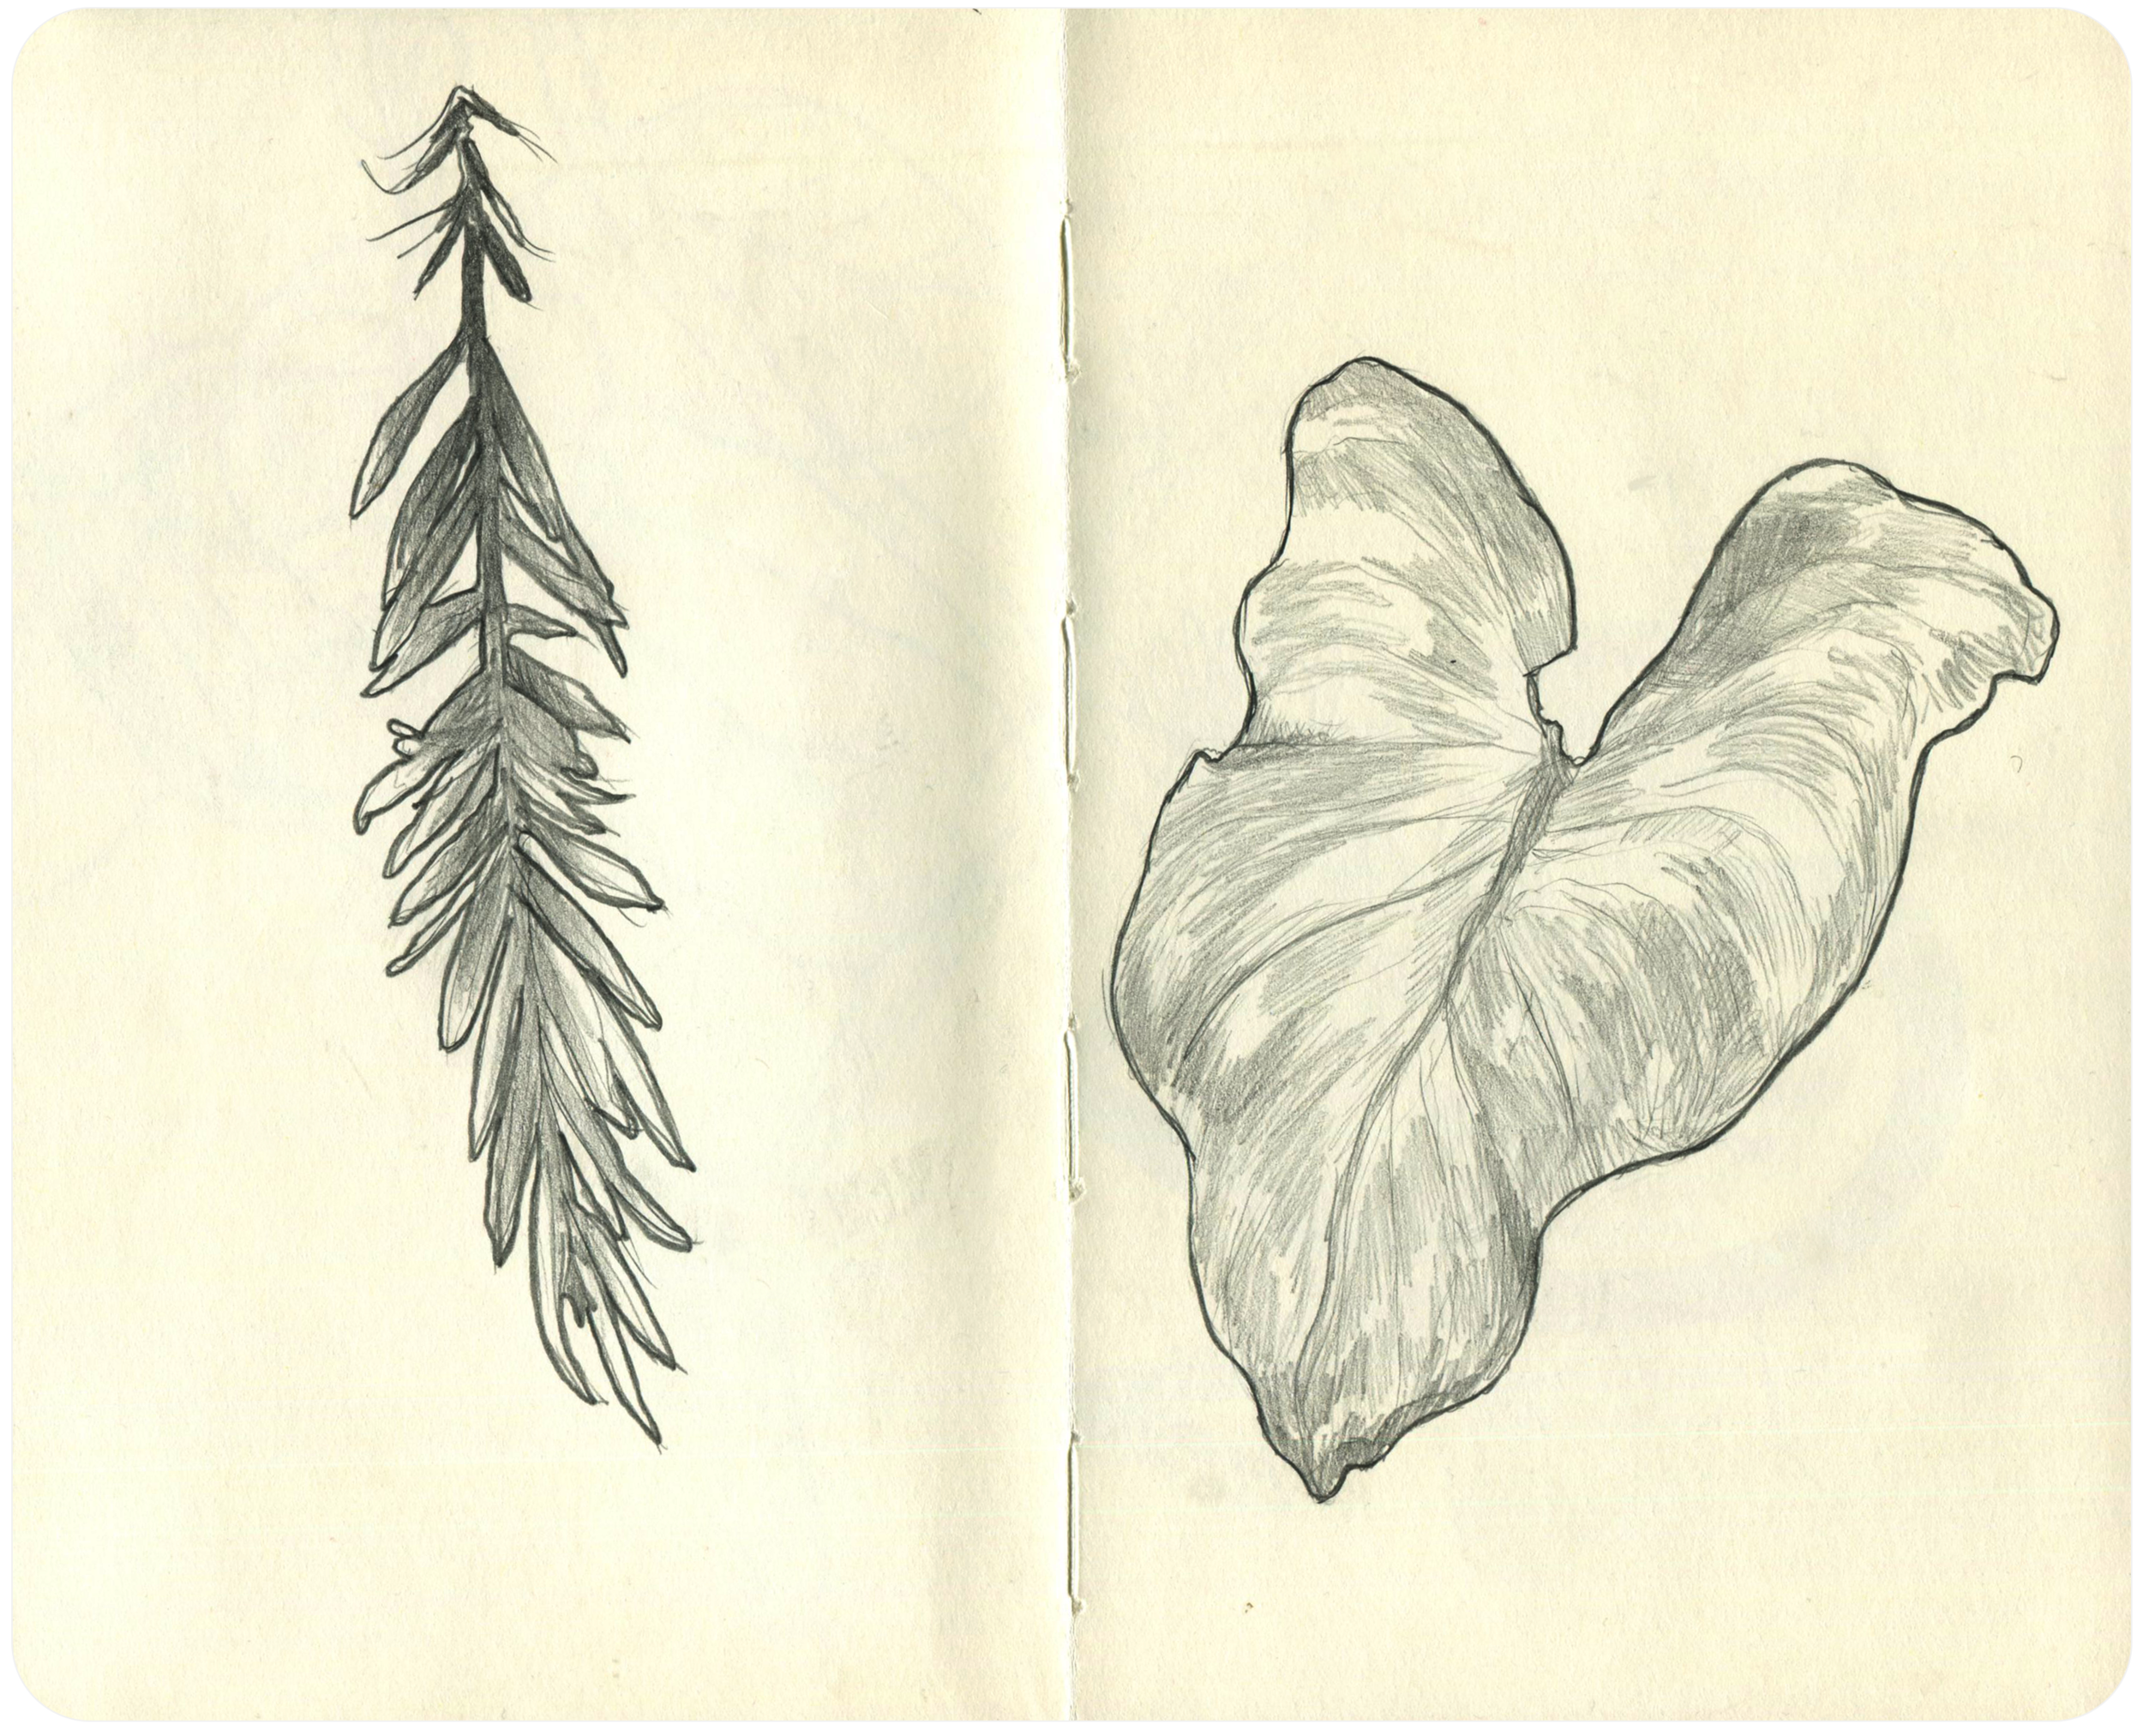 Life drawing sketches from Allan Gardens.